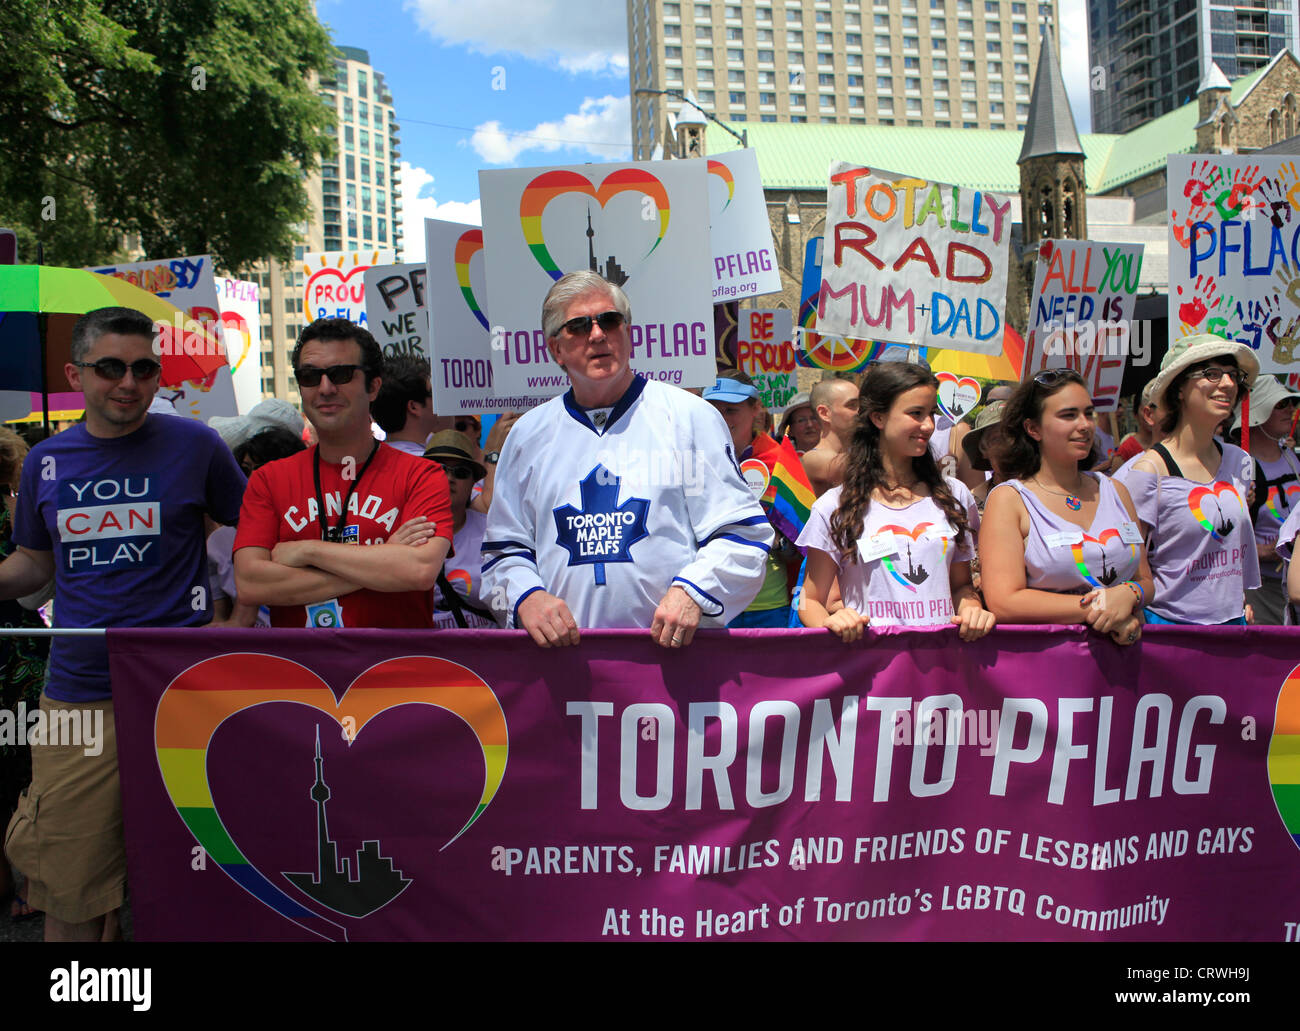 from Danny maple leafs gay